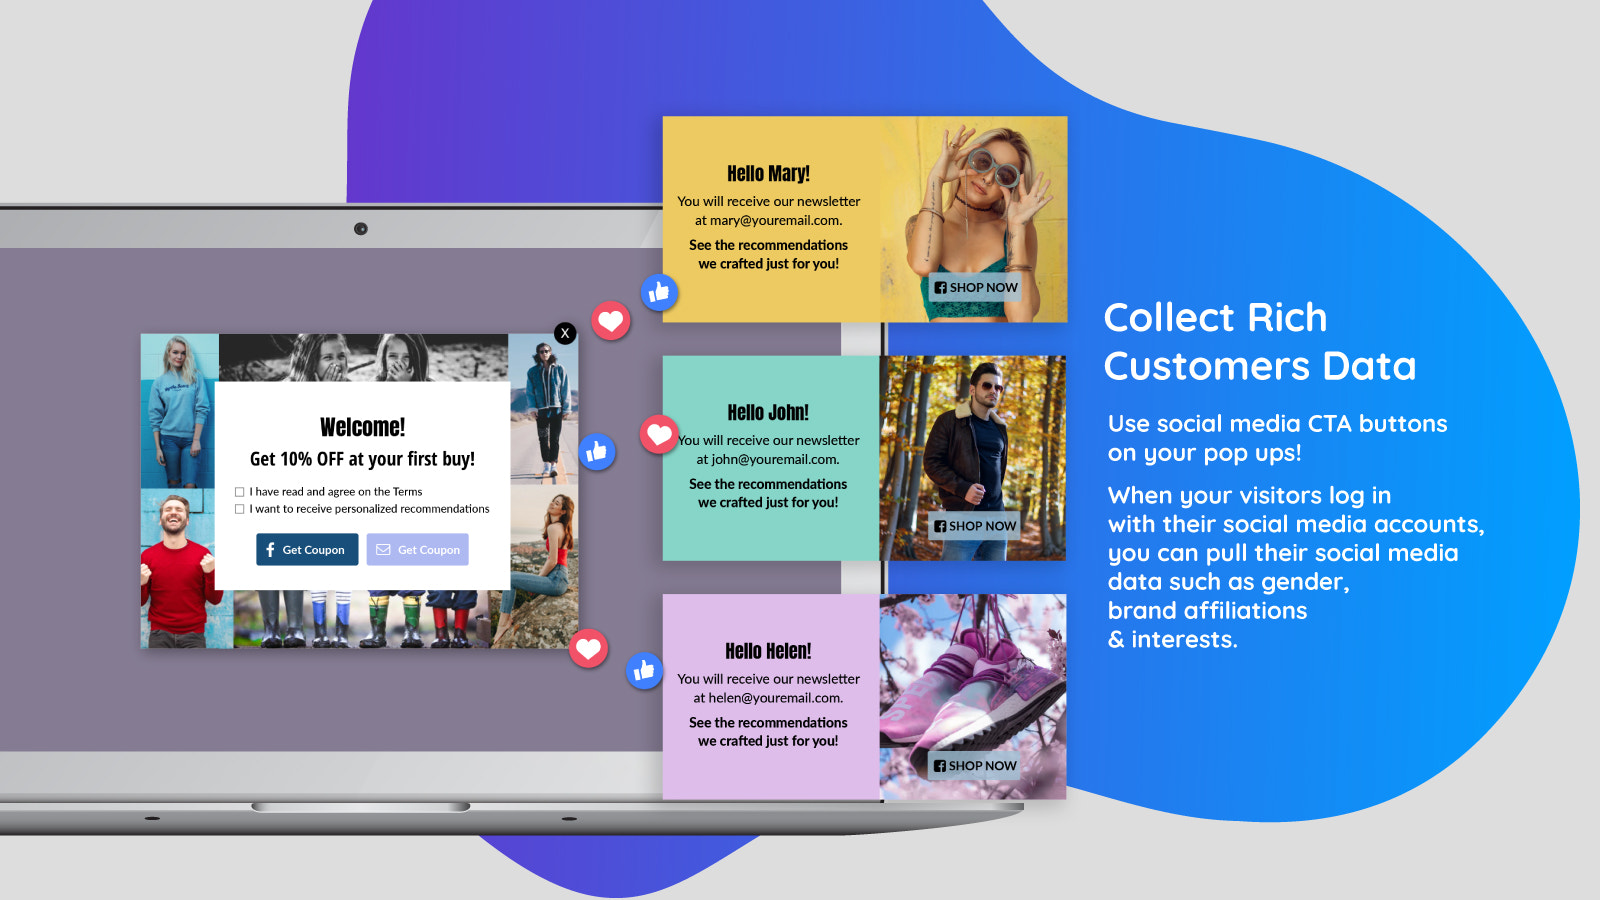 Use social media CTA buttons on your pop ups to collect data.